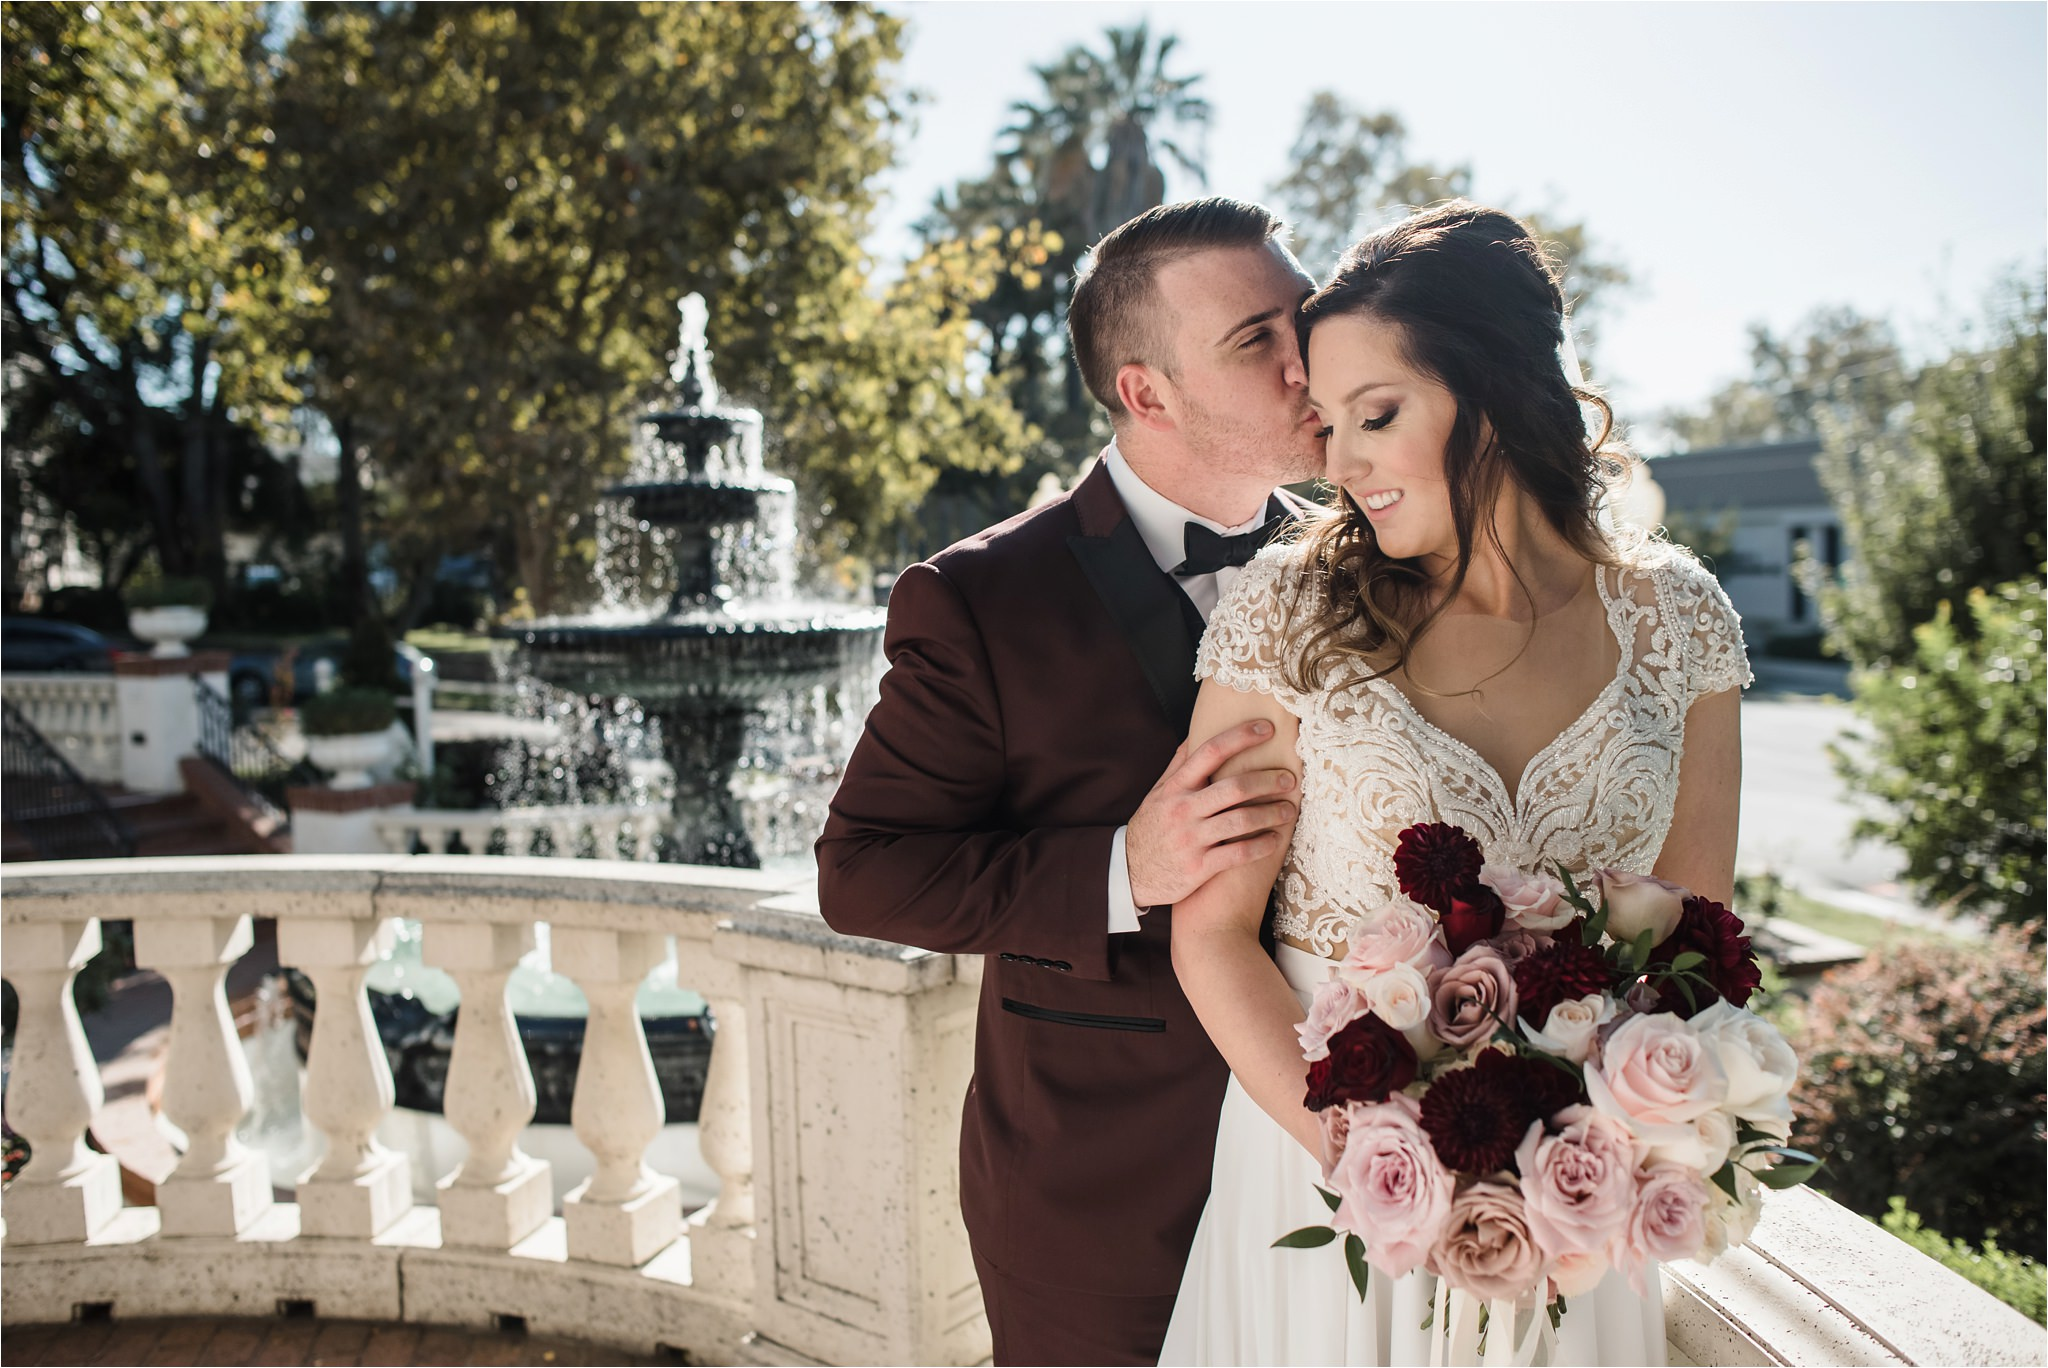 jessica-roman-photography-Vizcaya Wedding Photographer-Sacramento-021.jpg